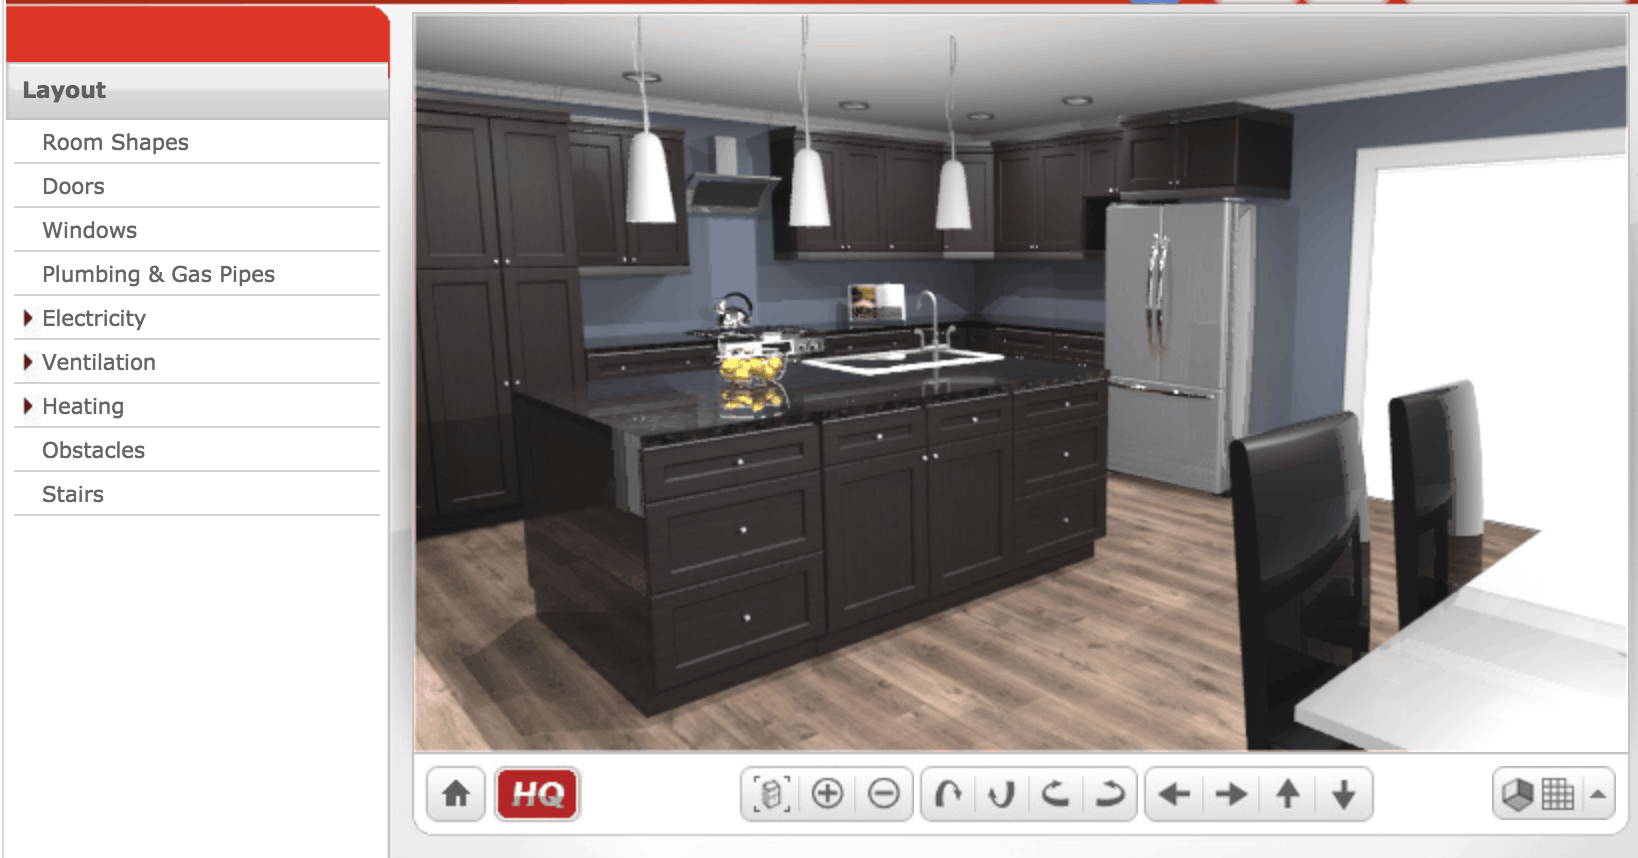 Home Hardware Free Kitchen Design Software User Interface Bathroomdesignsoftwarefree3d Kitchen Designs Layout Kitchen Design Software Online Kitchen Design